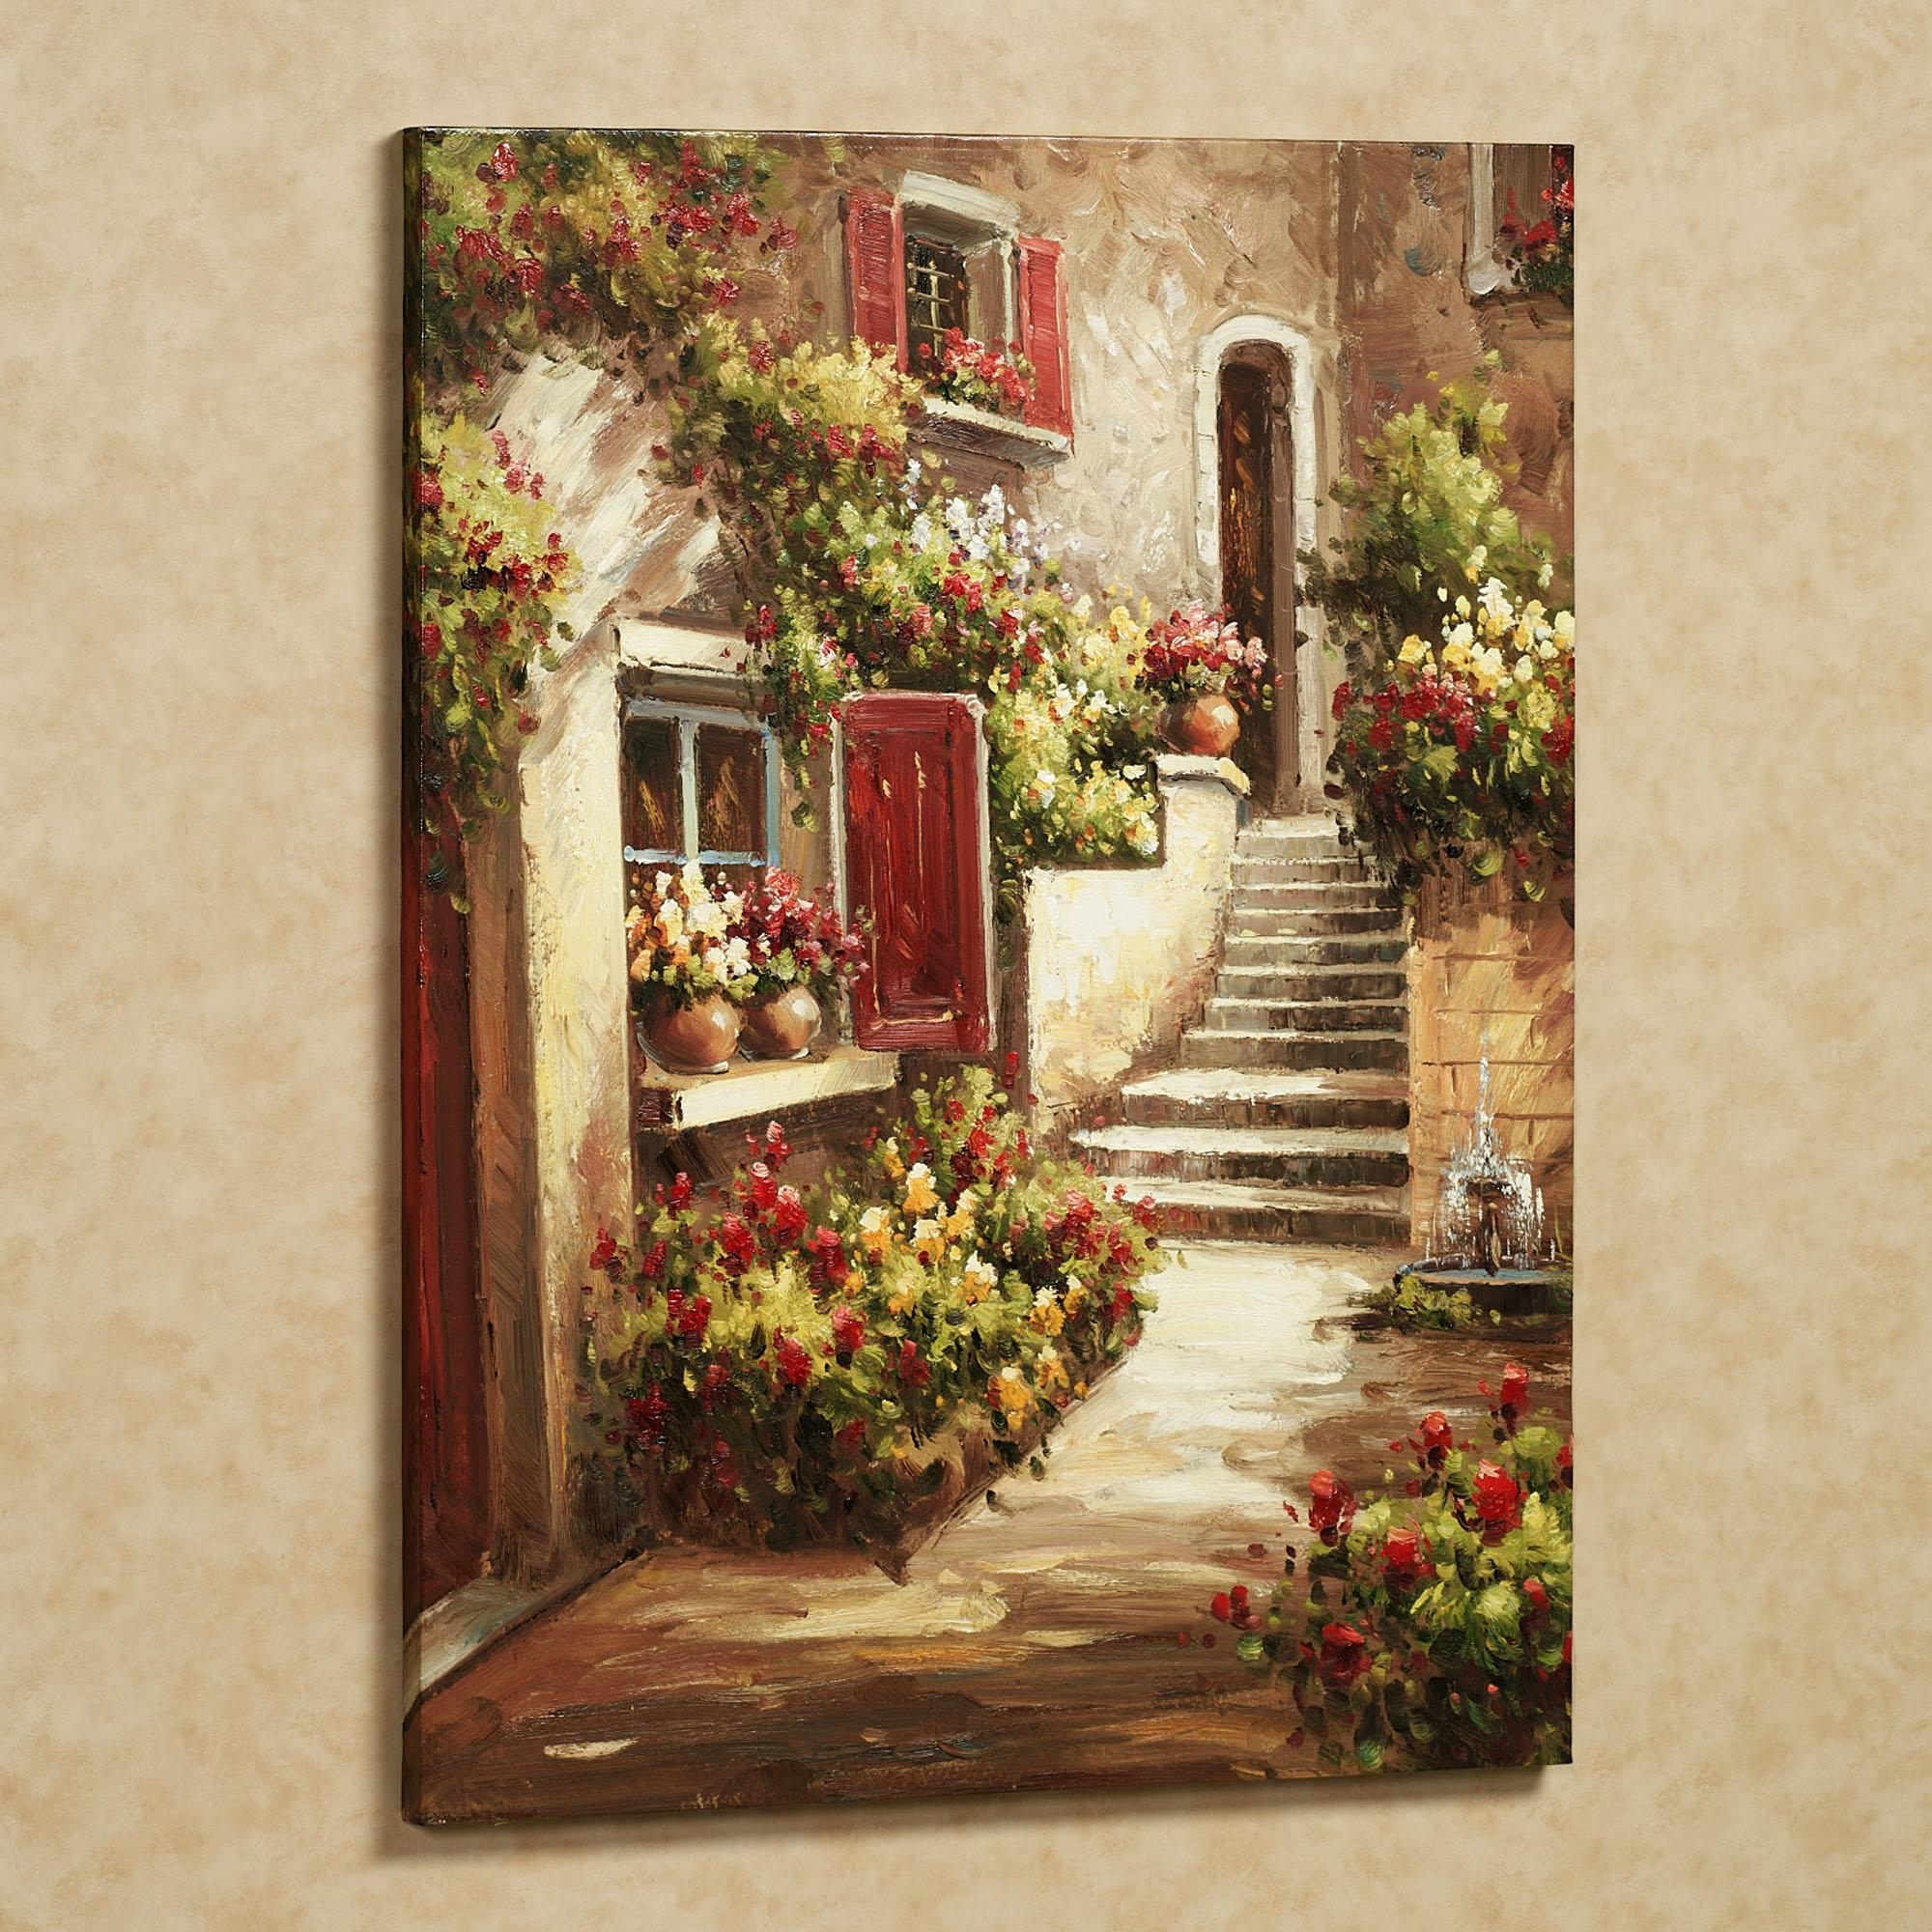 Wall Decor: Italian Wall Decor Pictures (Image 11 of 20)